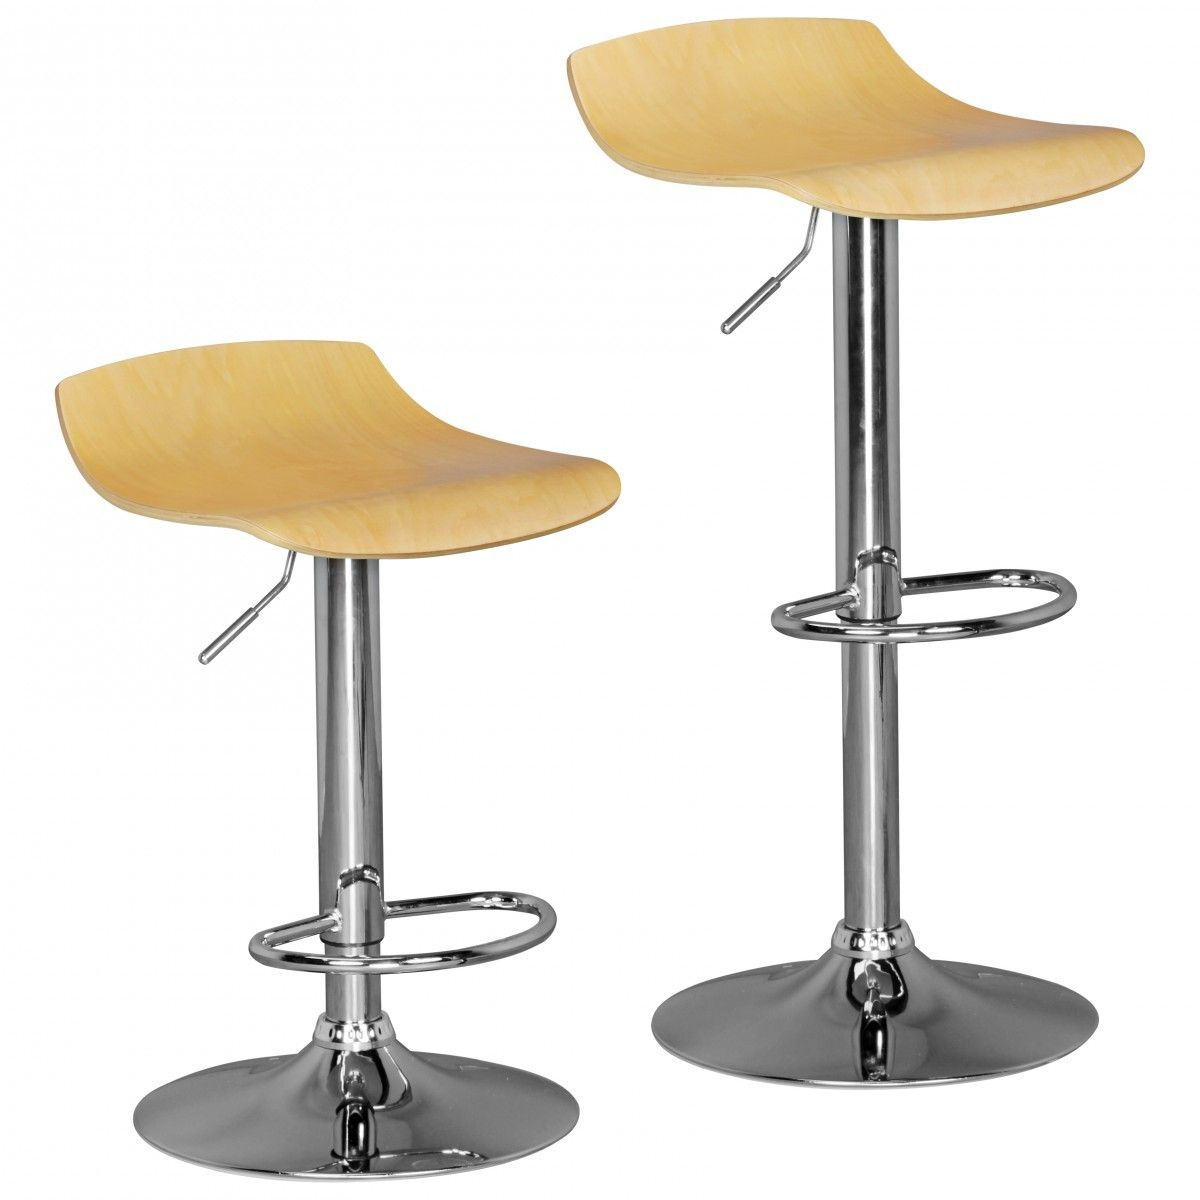 Pin By Ladendirekt On Bar Mobel Stool Furniture